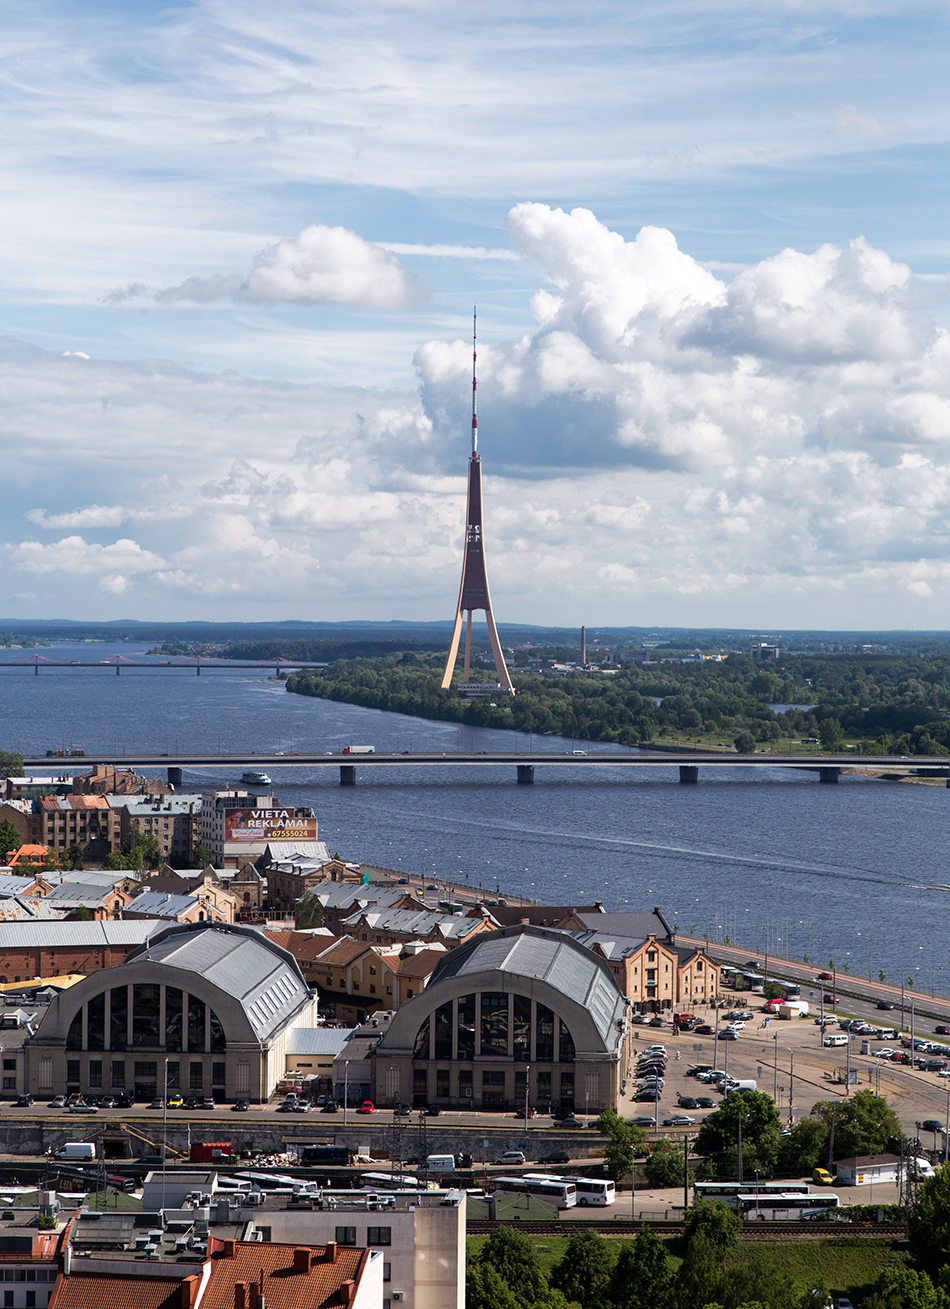 Fabian Fröhlich, Riga, Riga Radio and TV Tower, seen from St. Peter's Church